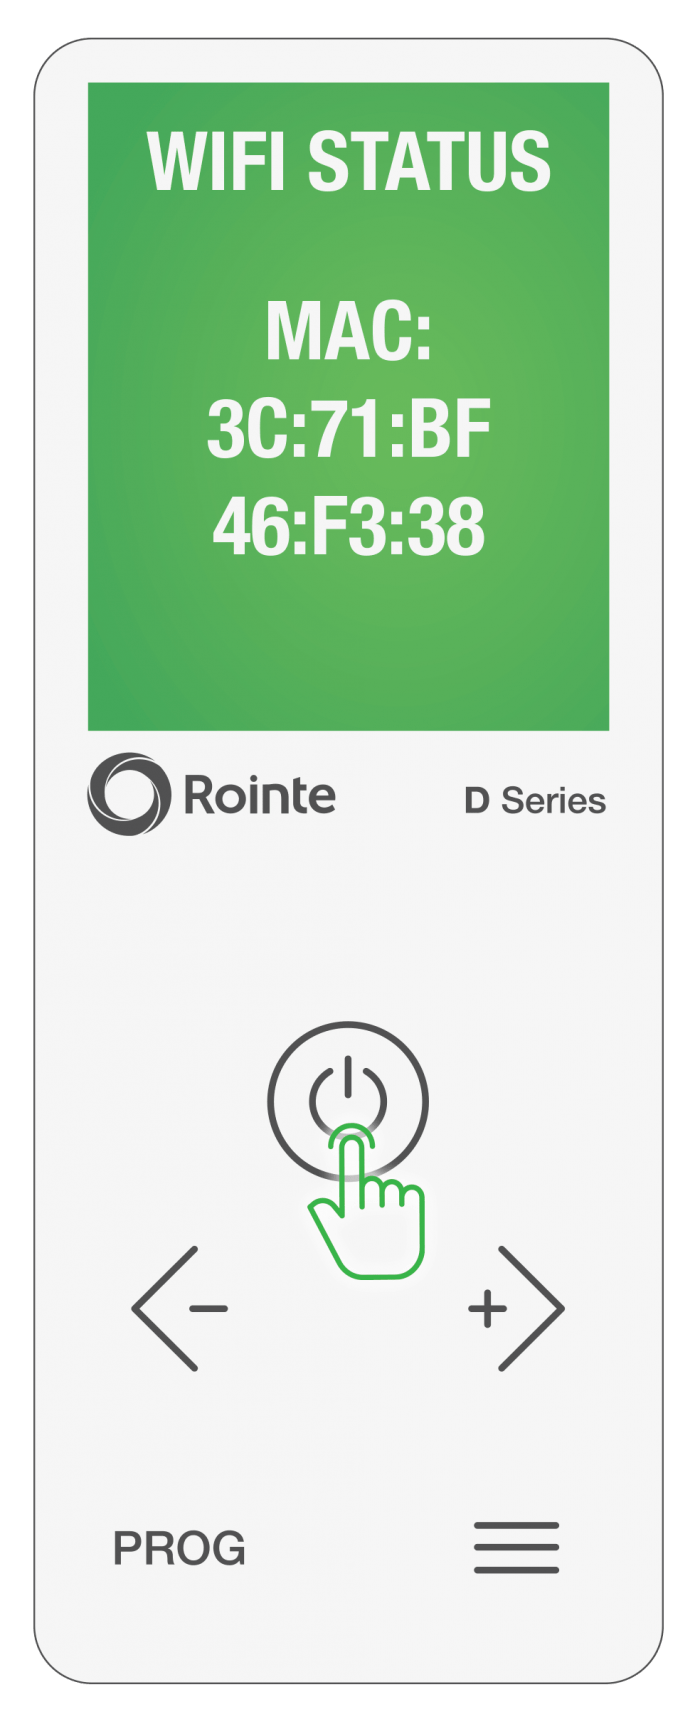 Rointe Connect app firmware/software WiFi information screen 2